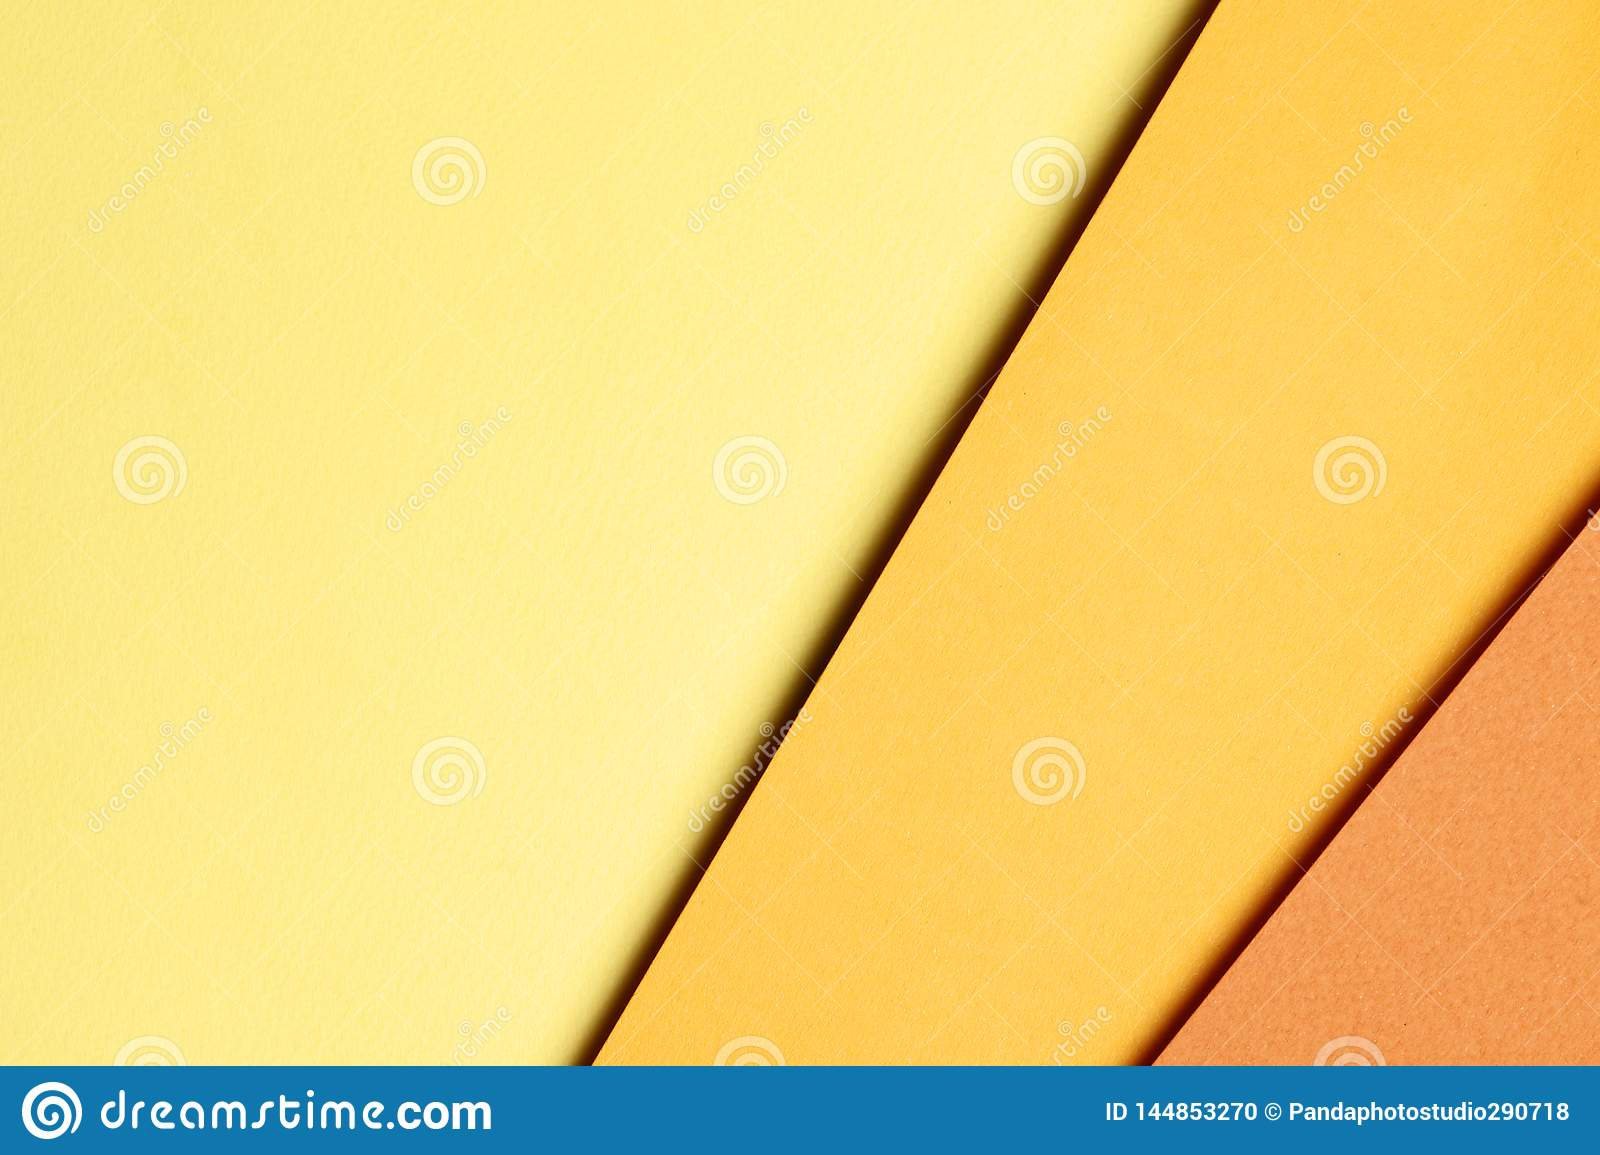 Bright orange abstract blank paper background